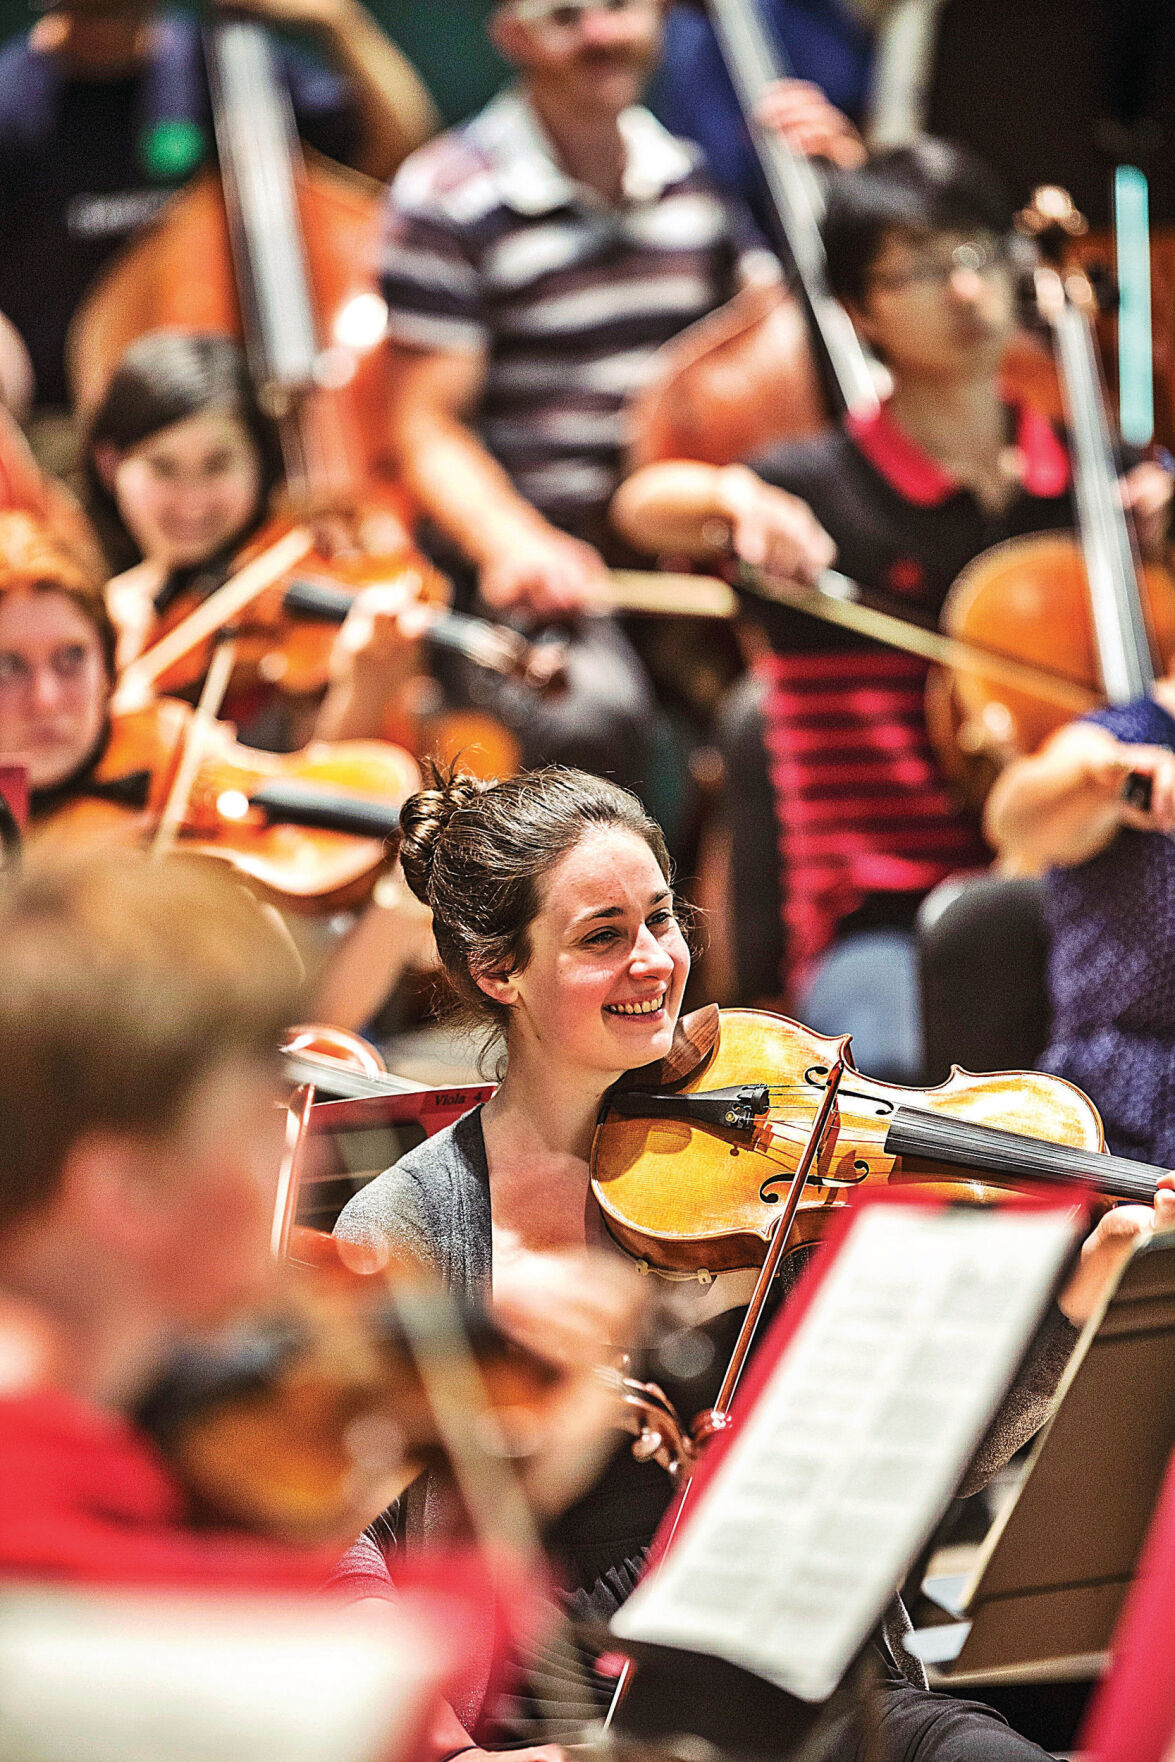 The world is watching, and listening, online - music conservatories better take note